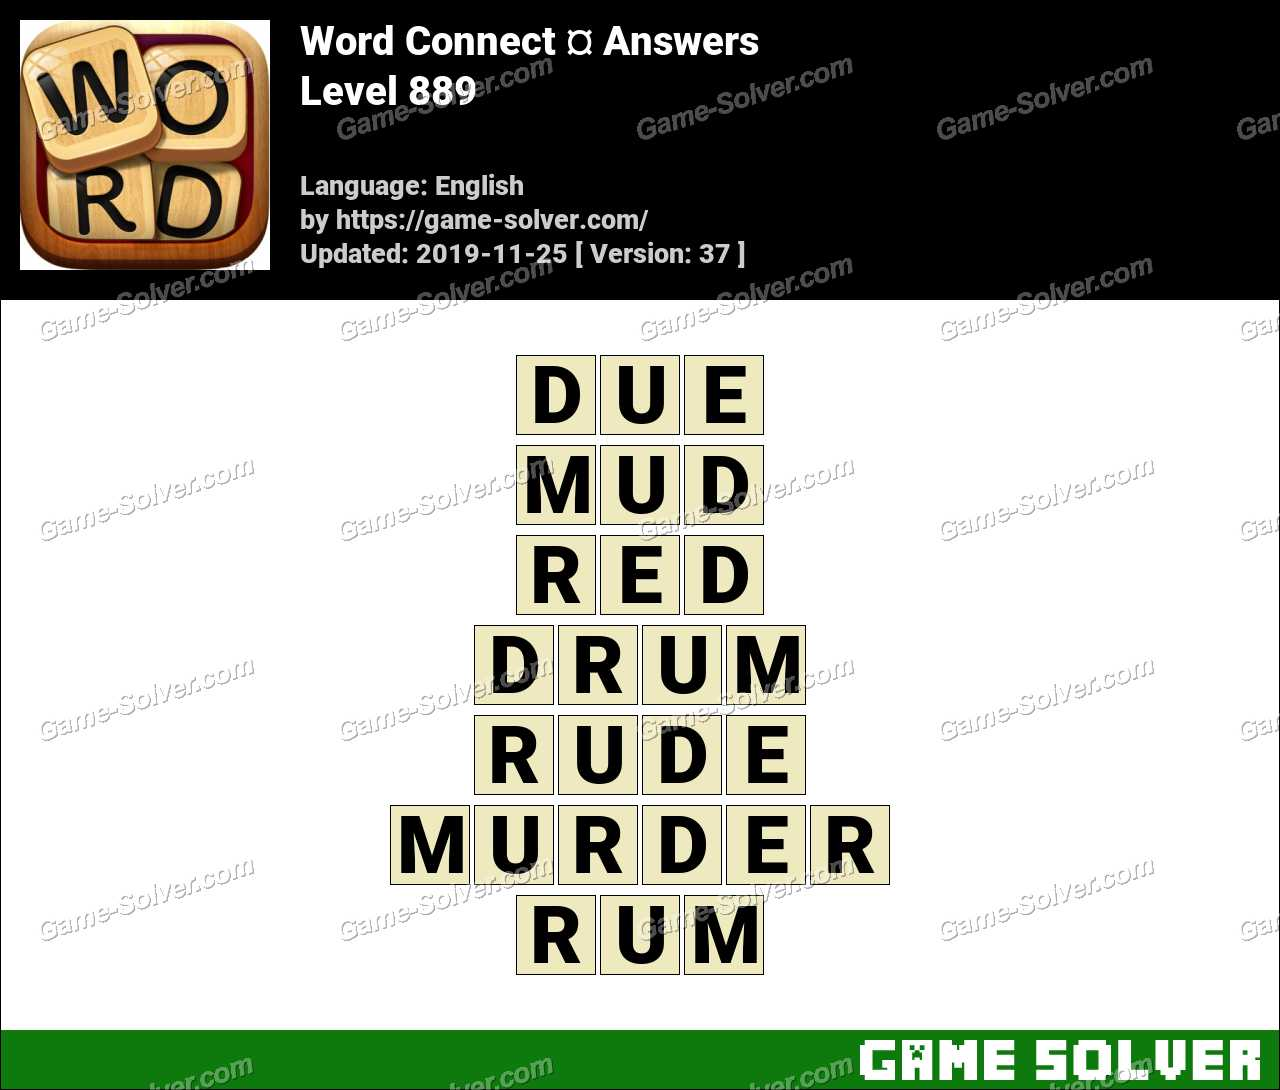 Word Connect Level 889 Answers